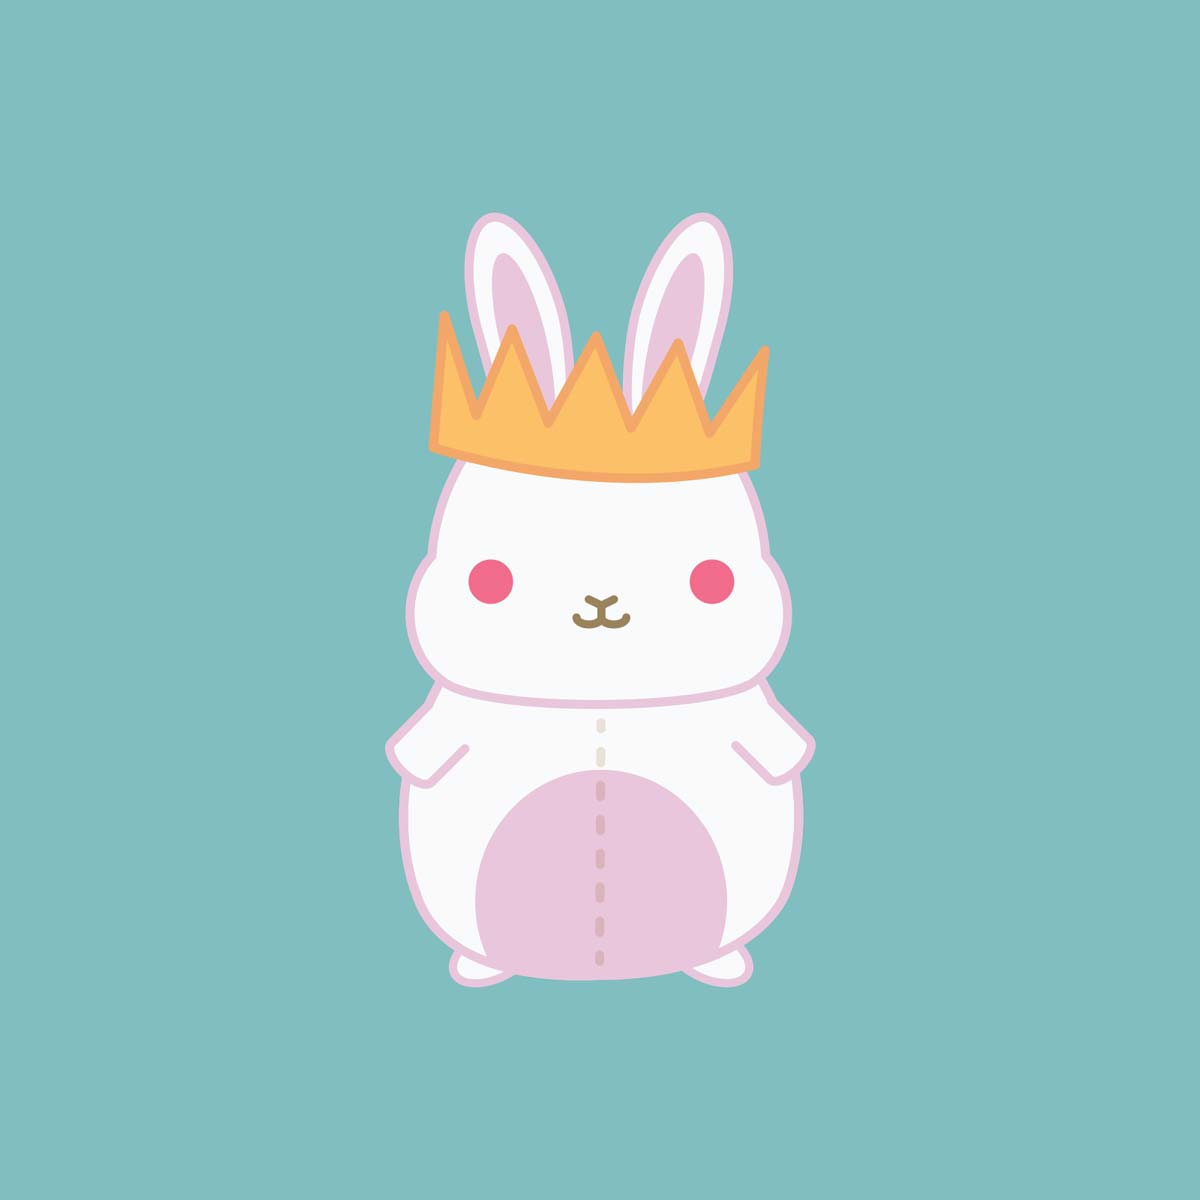 Graphic Design for Ackerly Green Publishing: King Bunny